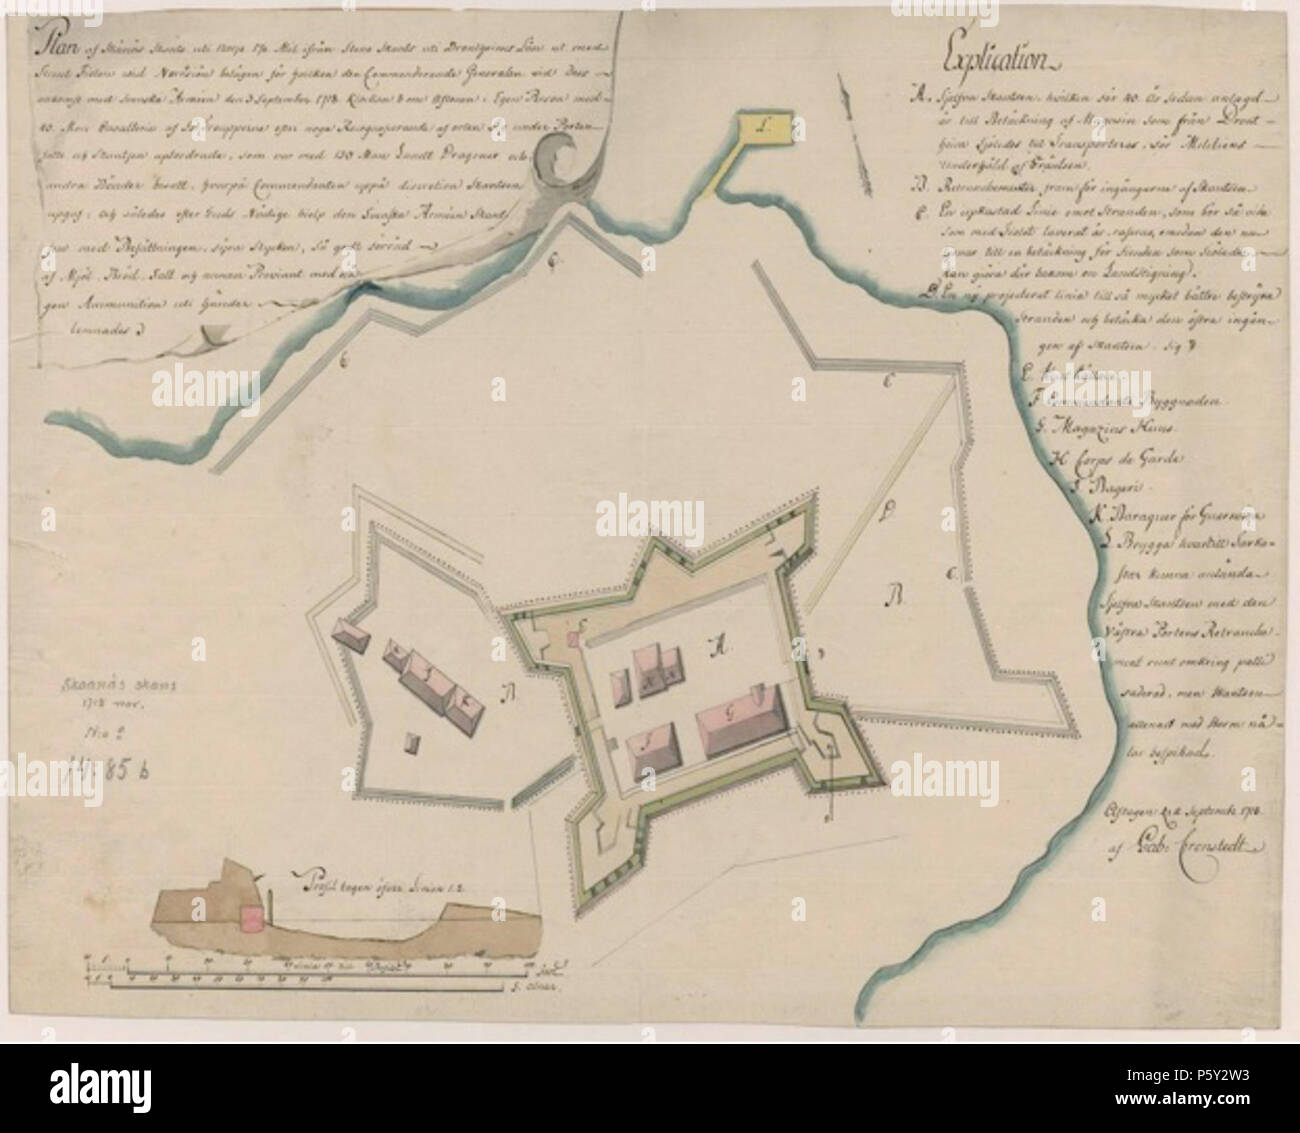 N A English Map Of The Fortification Of Skanes In Levanger